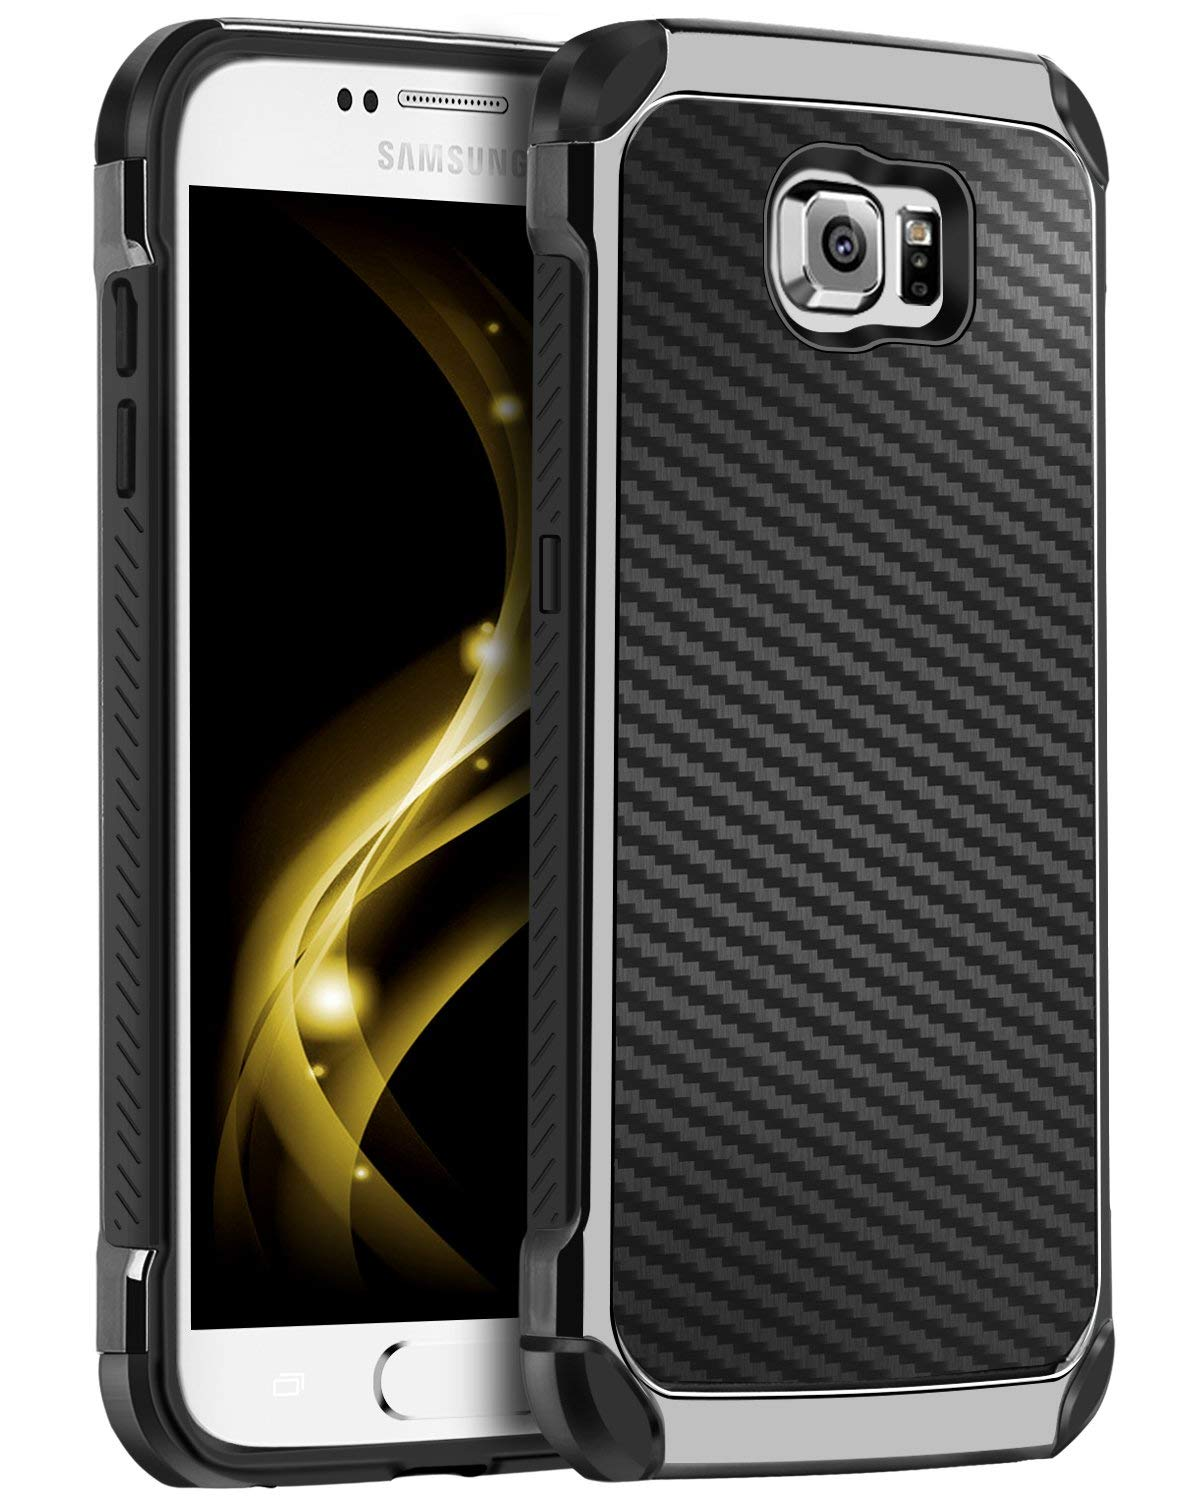 Galaxy S6 Case, S6 Case, BENTOBEN 2 in 1 Cool Slim Hybrid Hard PC Cover Laminated with Carbon Fiber Chrome Anti-Scratch Shockproof Protective Case for Samsung Galaxy S6 (G920), Black